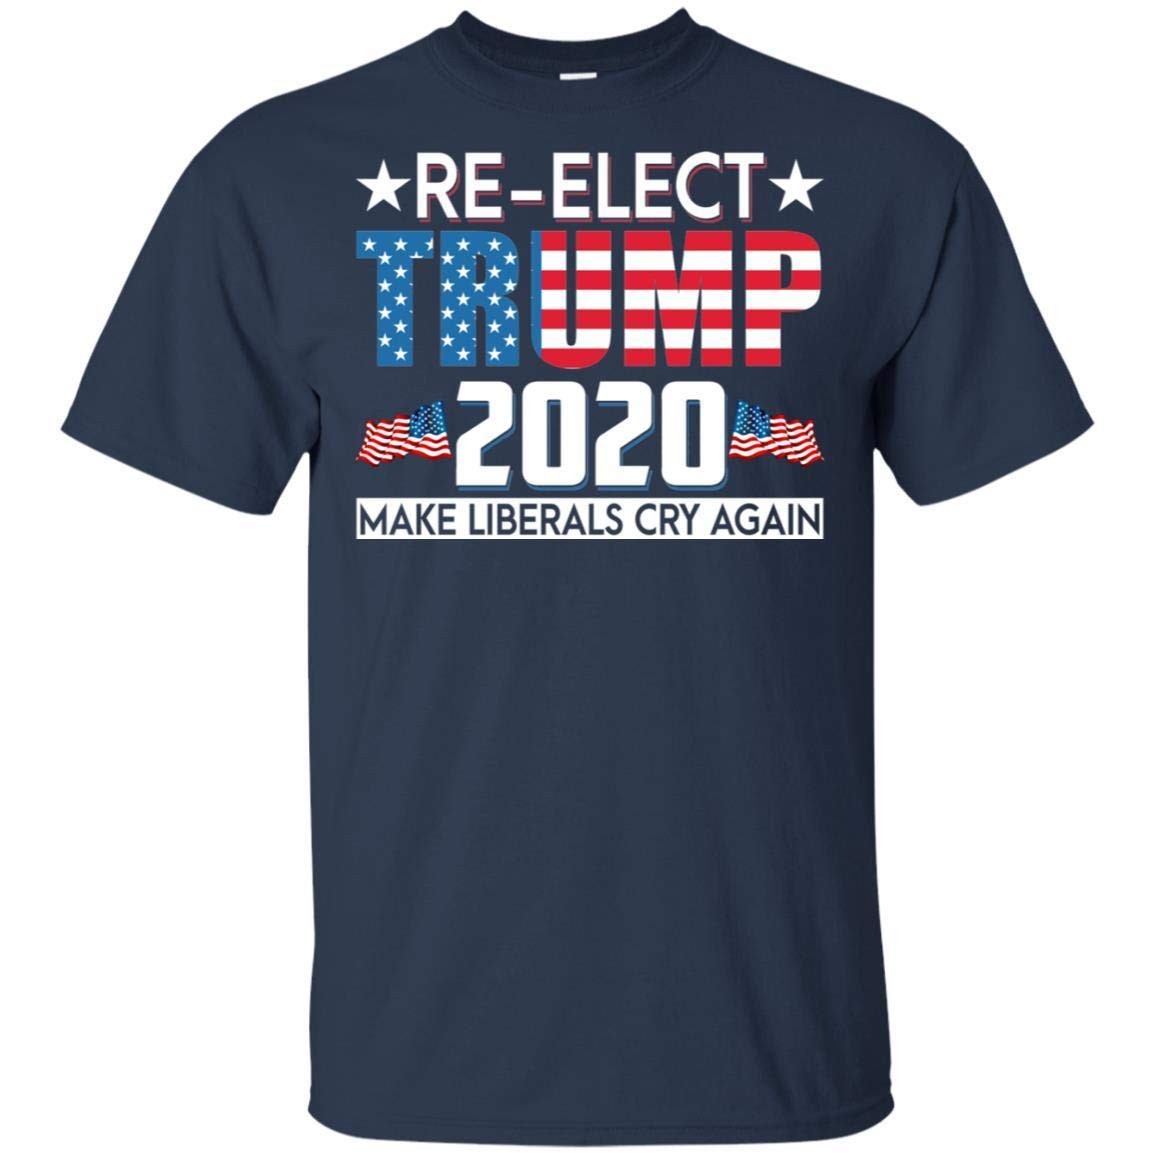 Teeland Re-elect Trump 2020 Make Liberals Cry Again For For For Fans Shirts